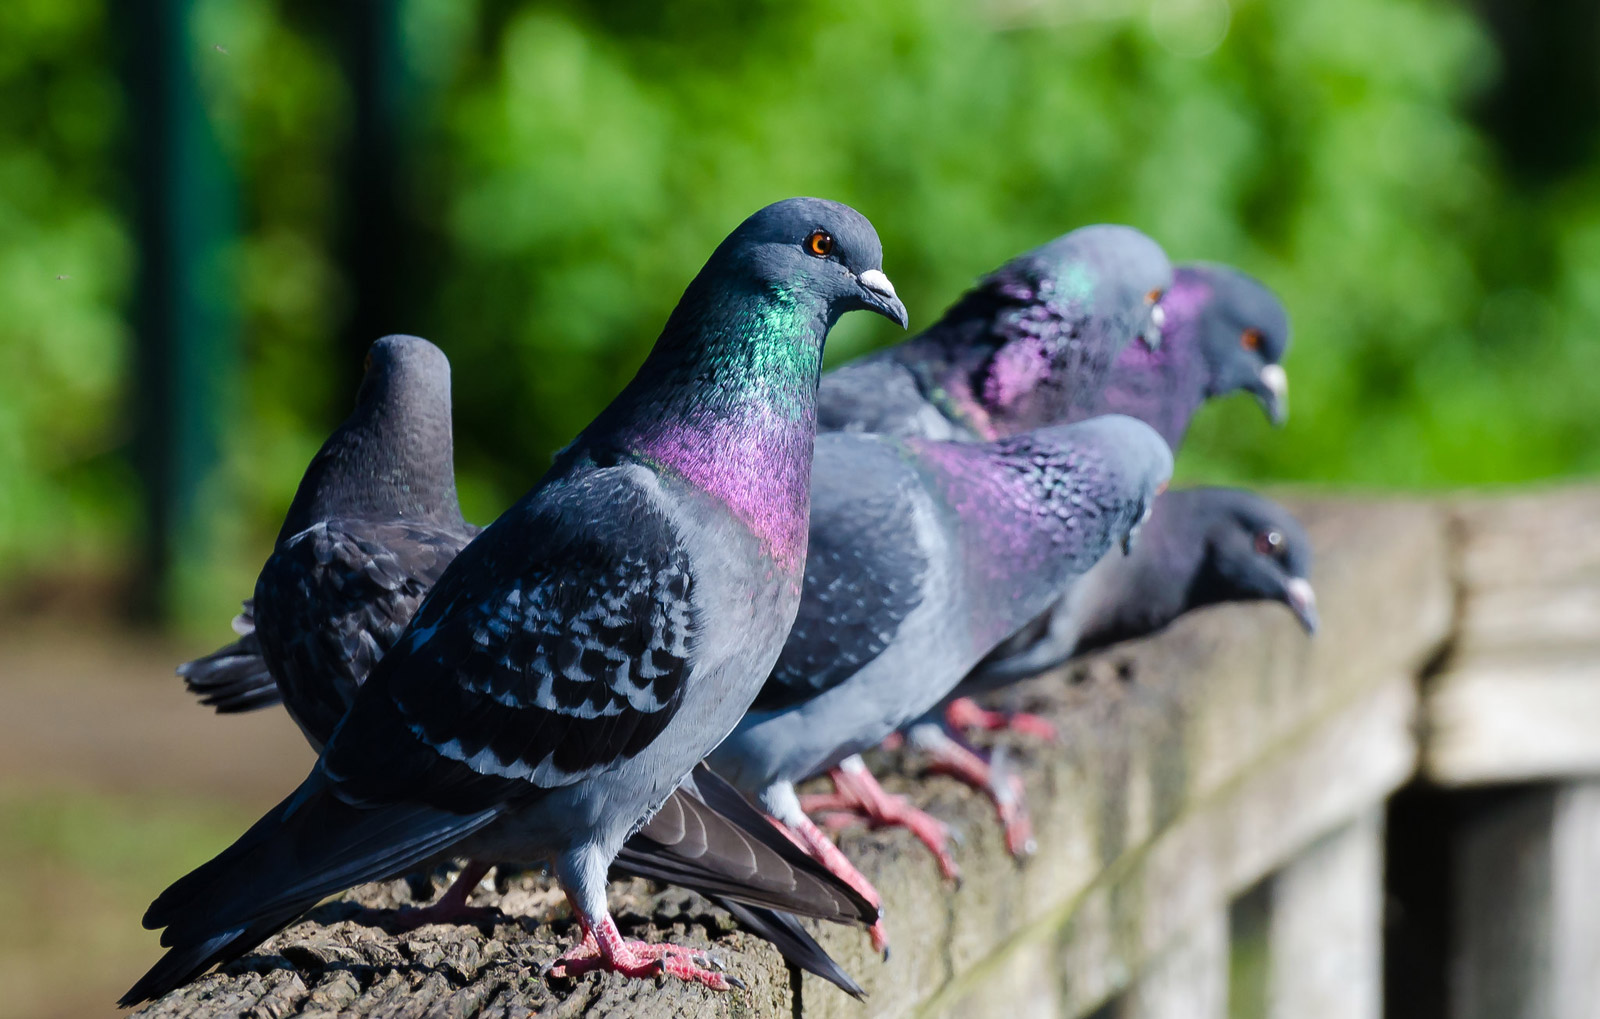 beautiful pigeon picture mikethereservewarden